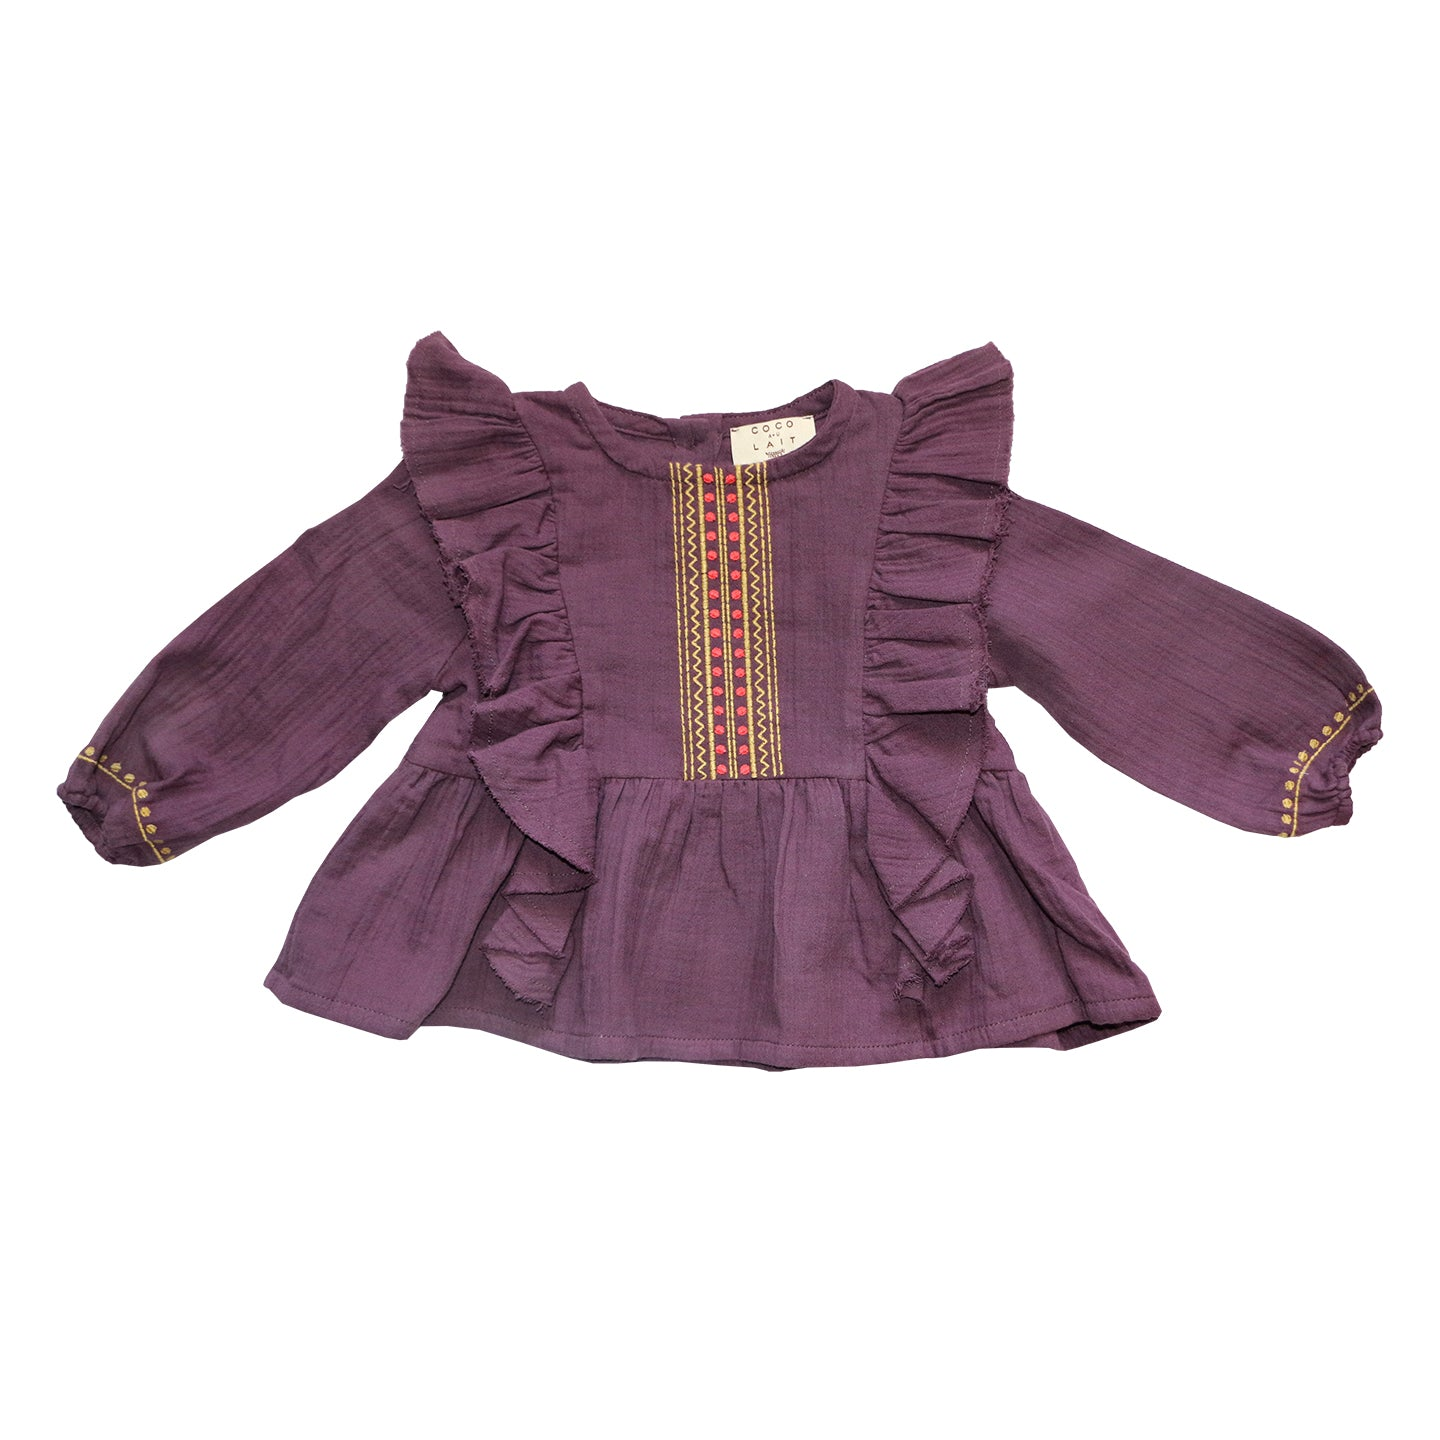 Load image into Gallery viewer, Coco Au Lait BABY BURGUNDY EMROIDERED BLOUSE Blouse Prune Purple